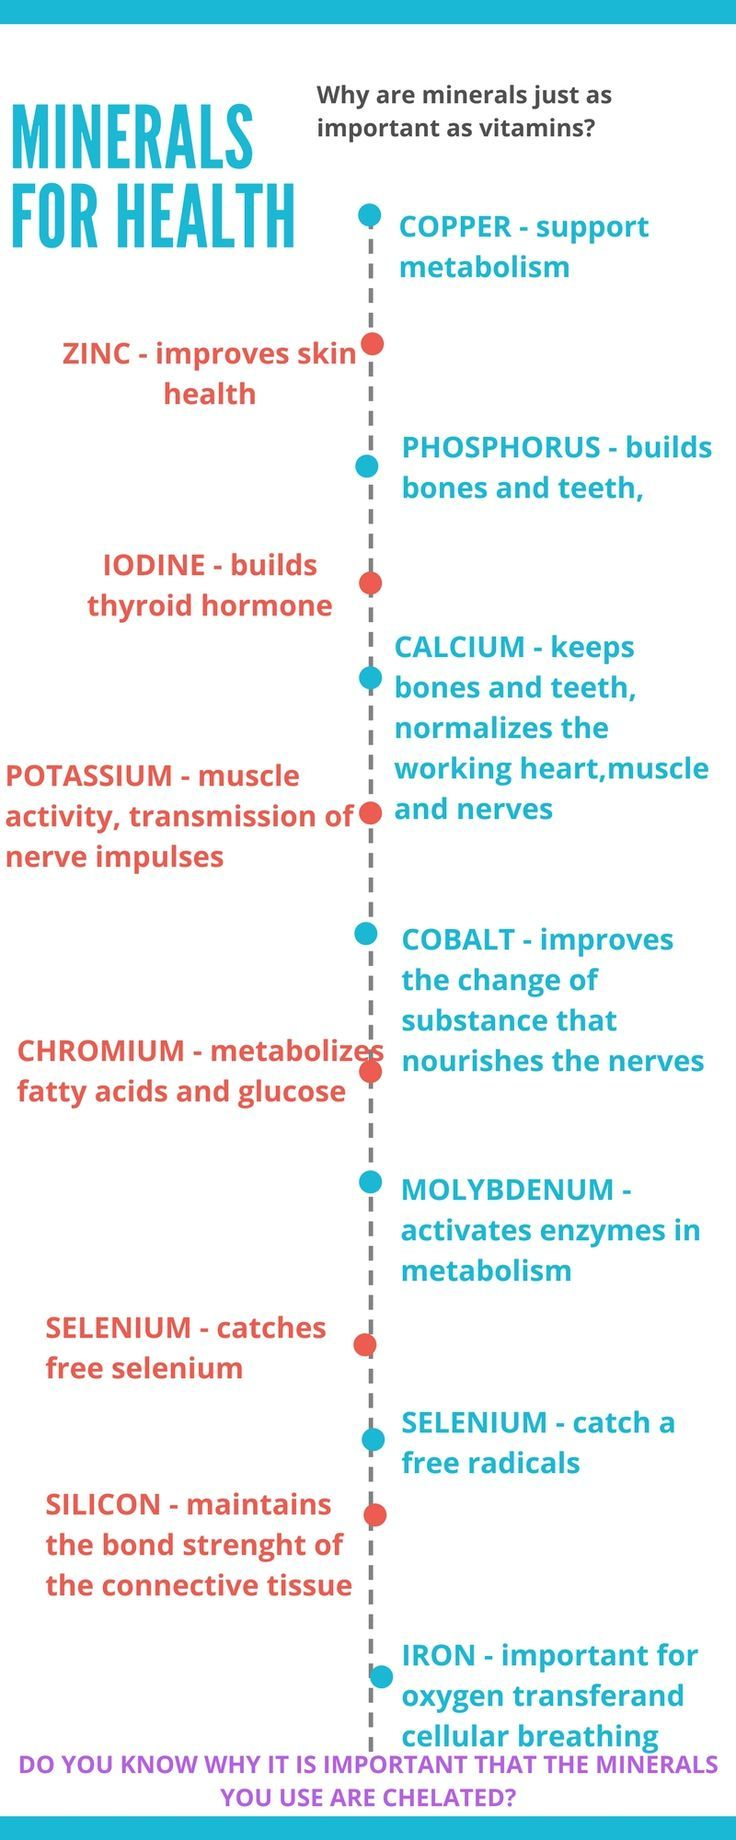 what mineral helps keep muscles and nerves healthy